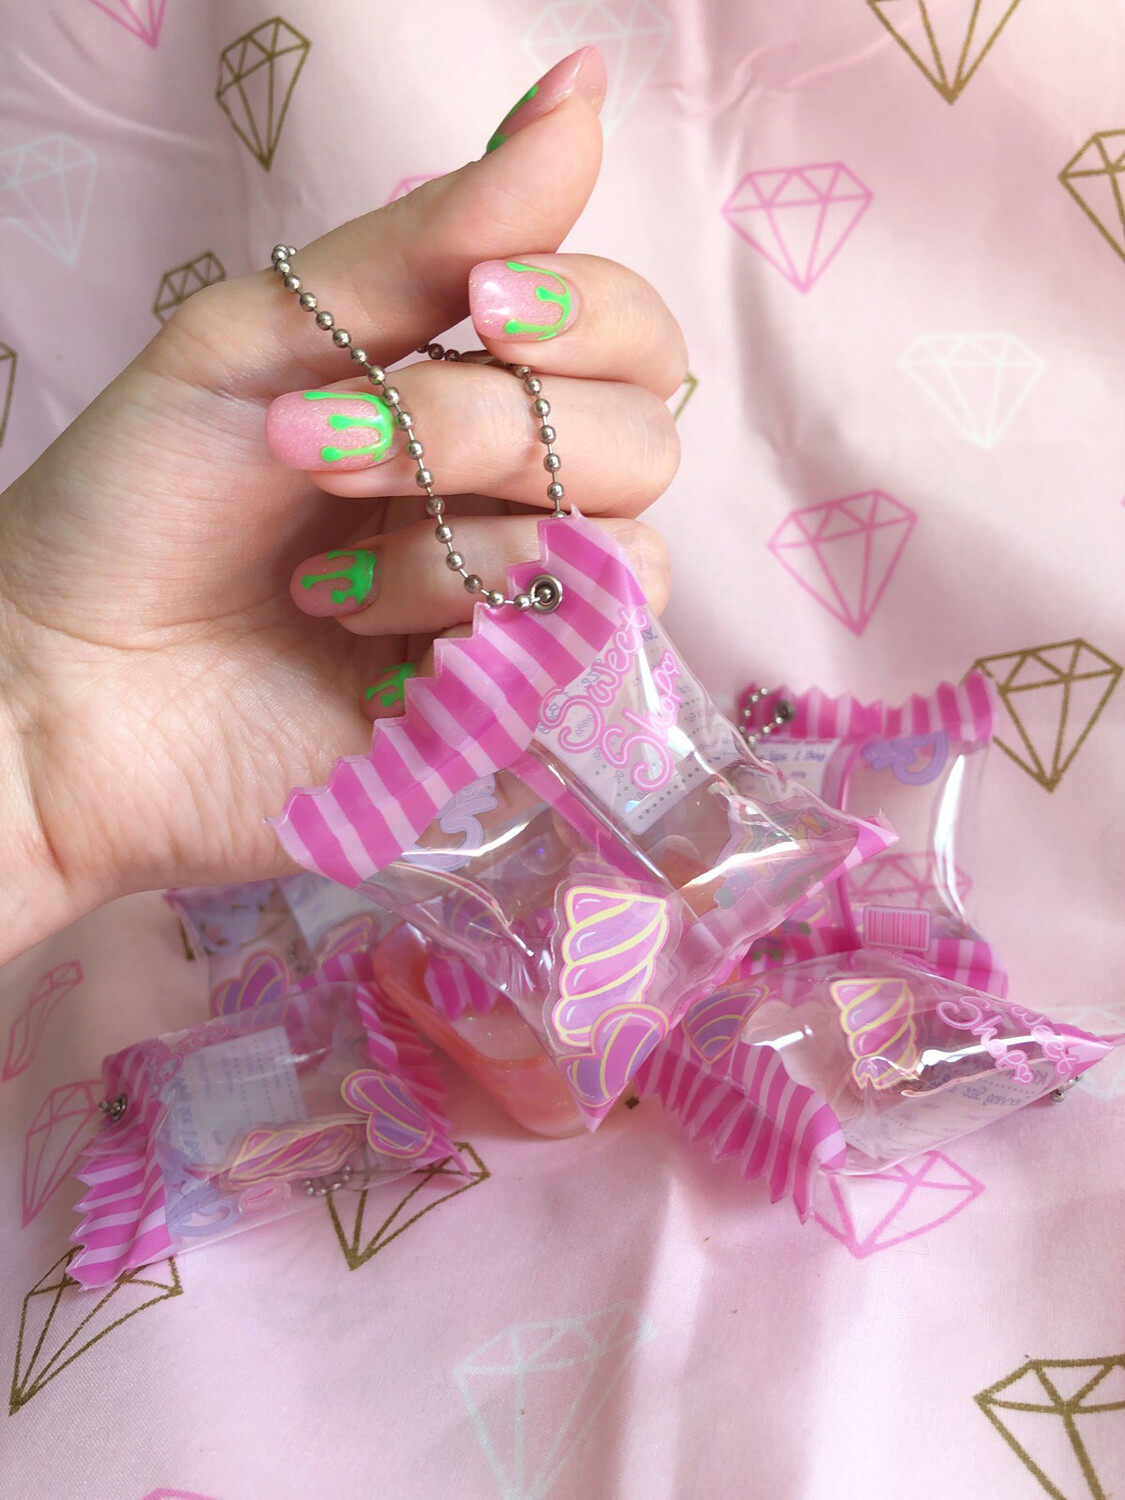 Kity Mallow Candy Bag charm